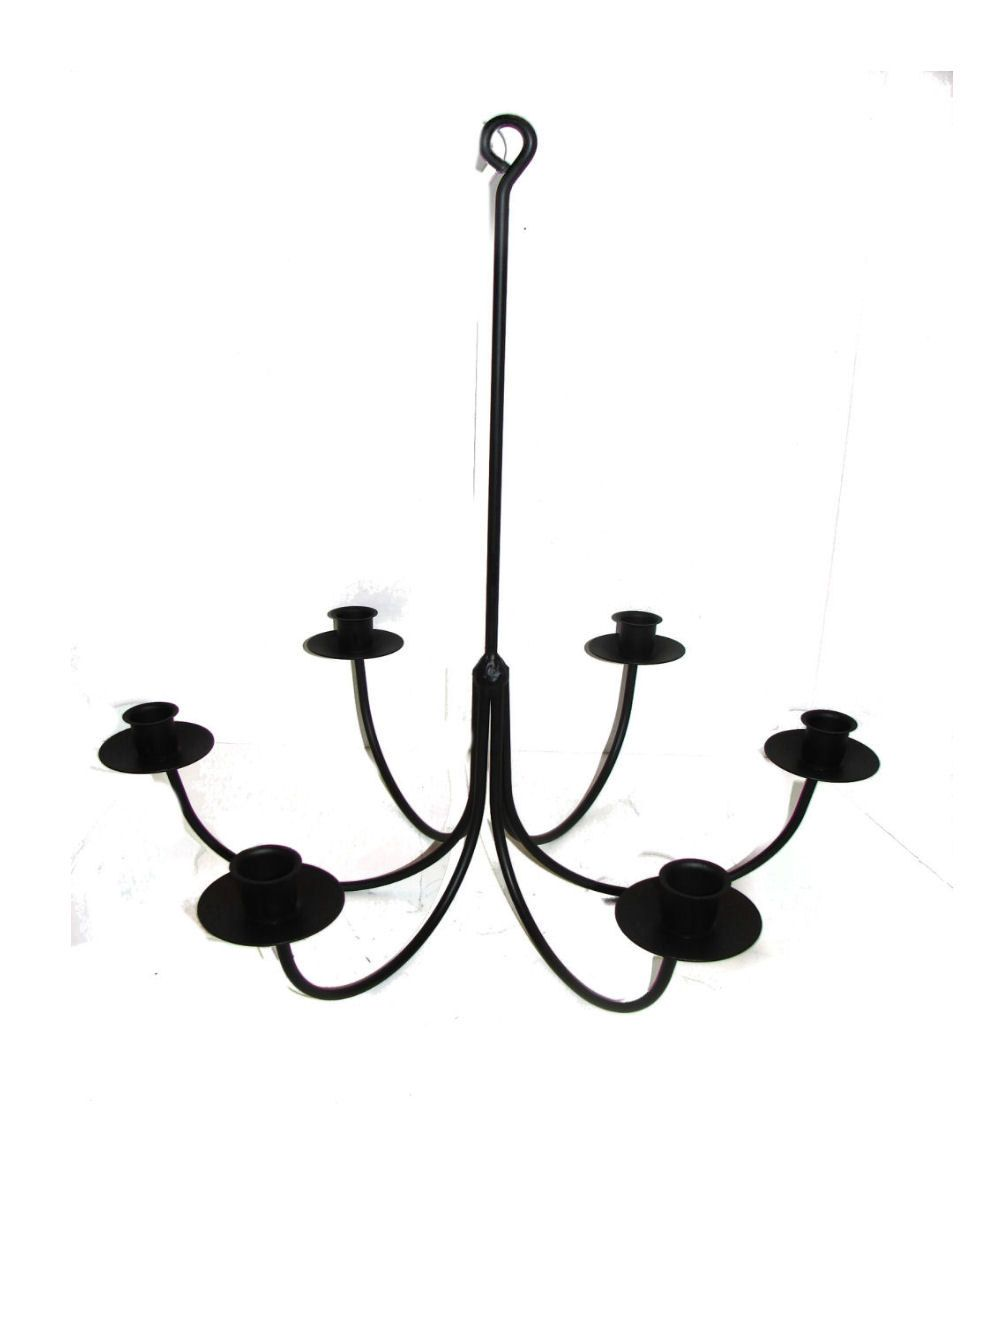 34 95 Wrought Iron 6 Arm Candle Chandelier 17w X 20h Spray Paint